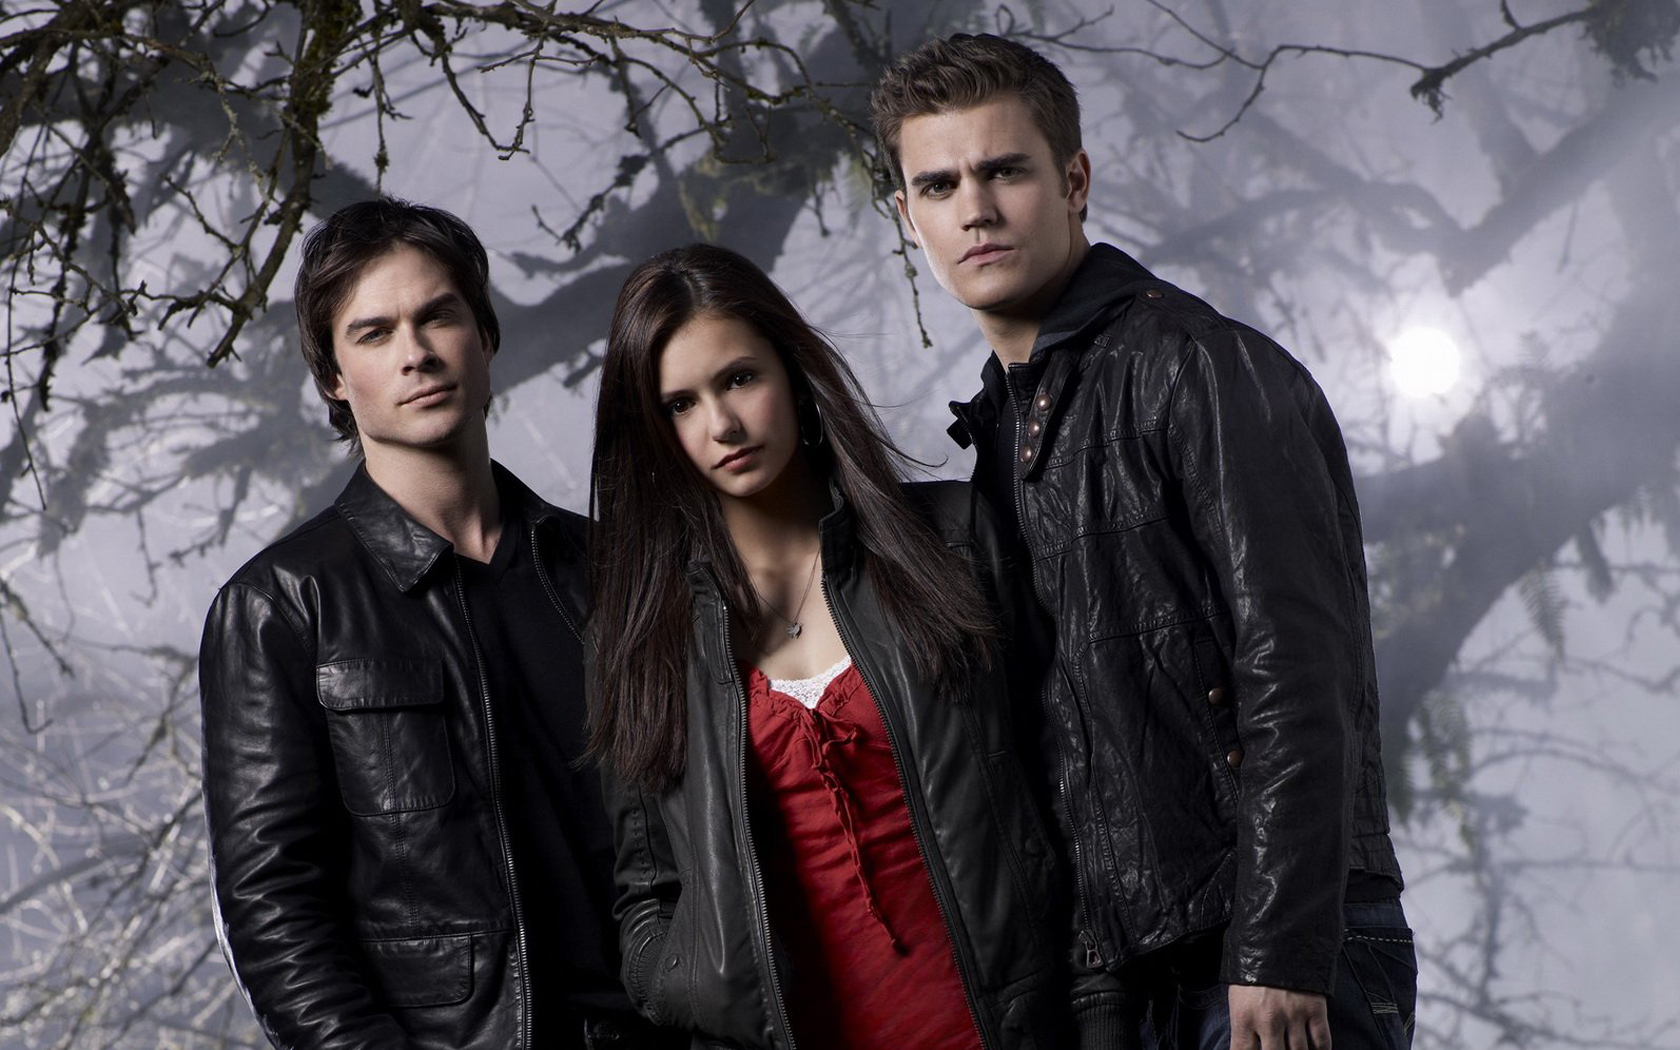 Vampire Diaries 1981121 Hd Wallpaper Backgrounds Download